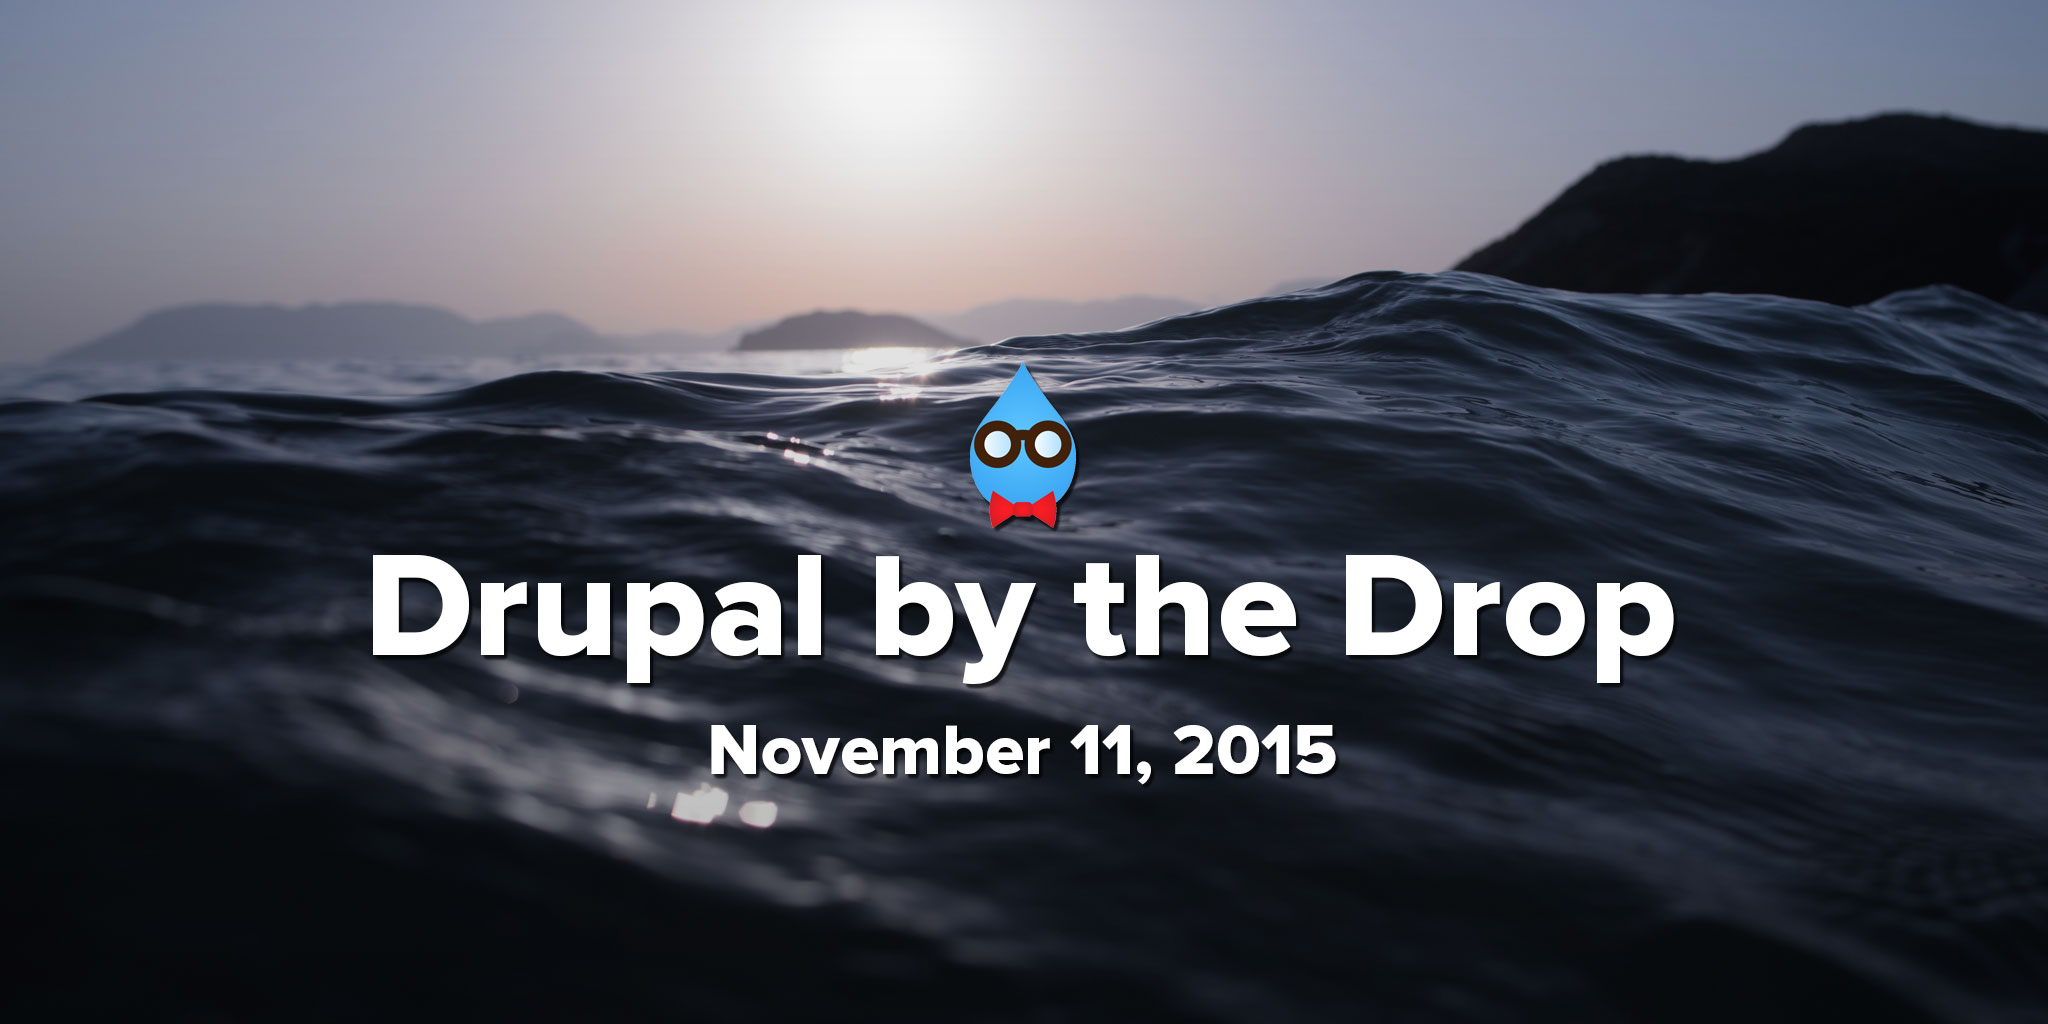 Drupal by the Drop: November 11, 2015